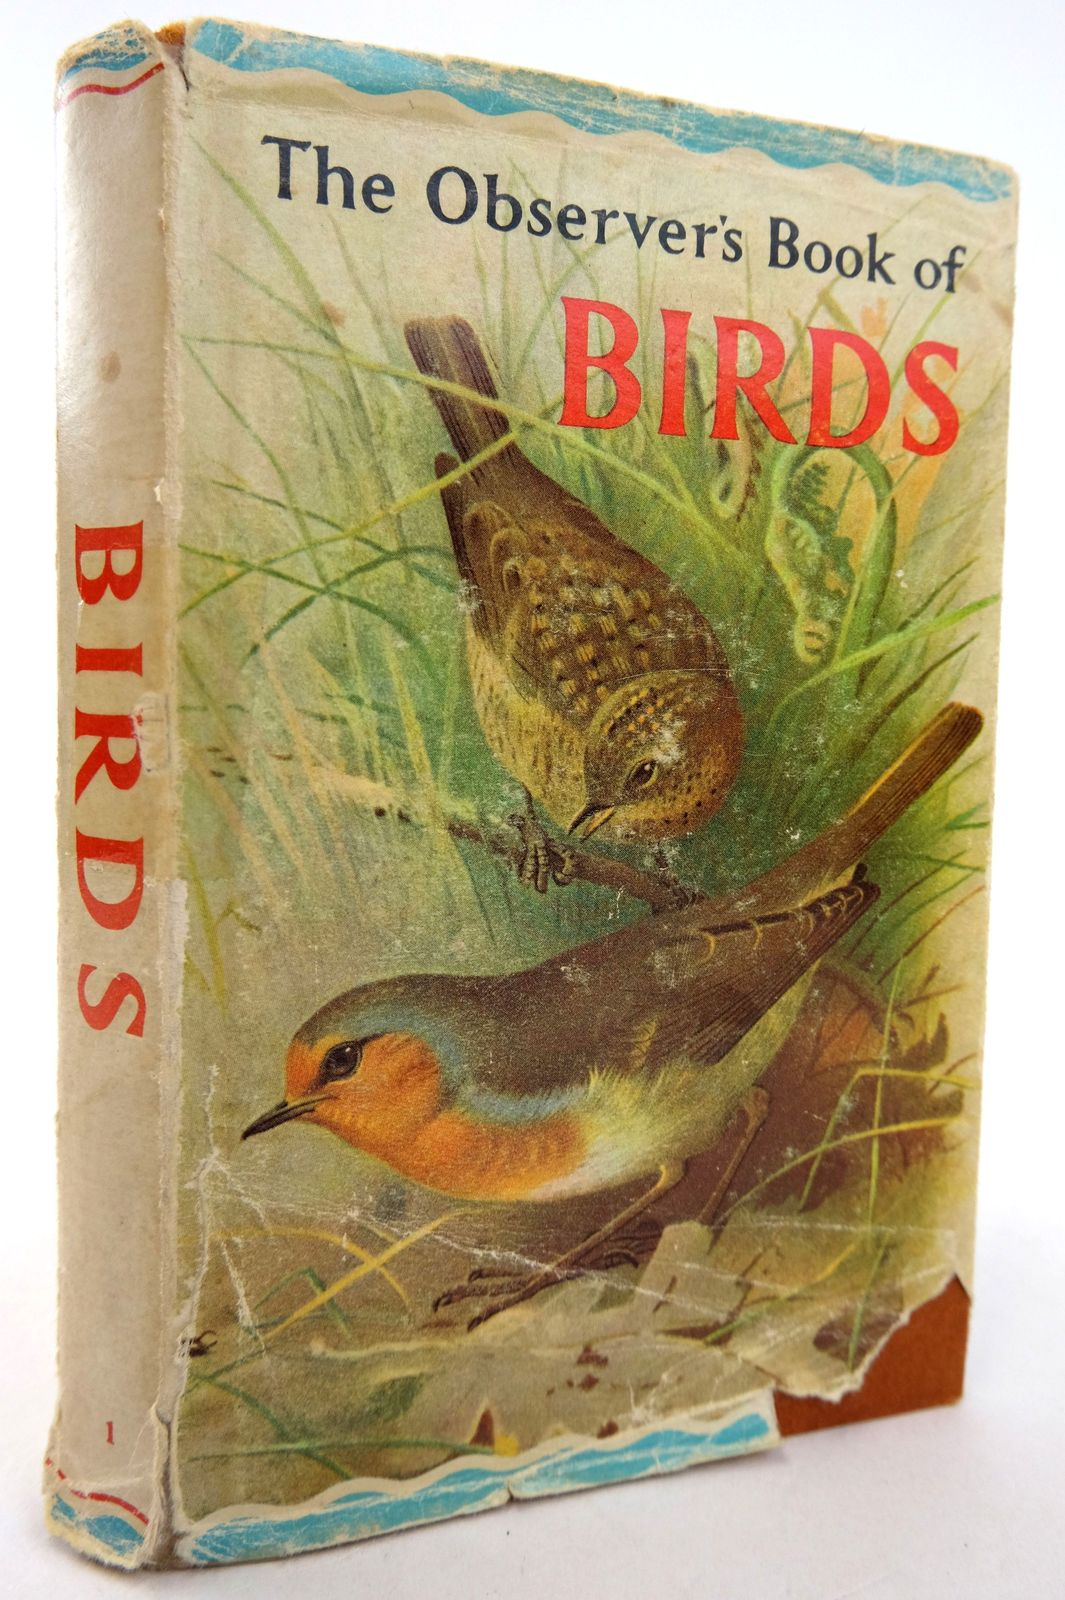 Photo of THE OBSERVER'S BOOK OF BIRDS written by Benson, S. Vere published by Frederick Warne & Co Ltd. (STOCK CODE: 1819369)  for sale by Stella & Rose's Books